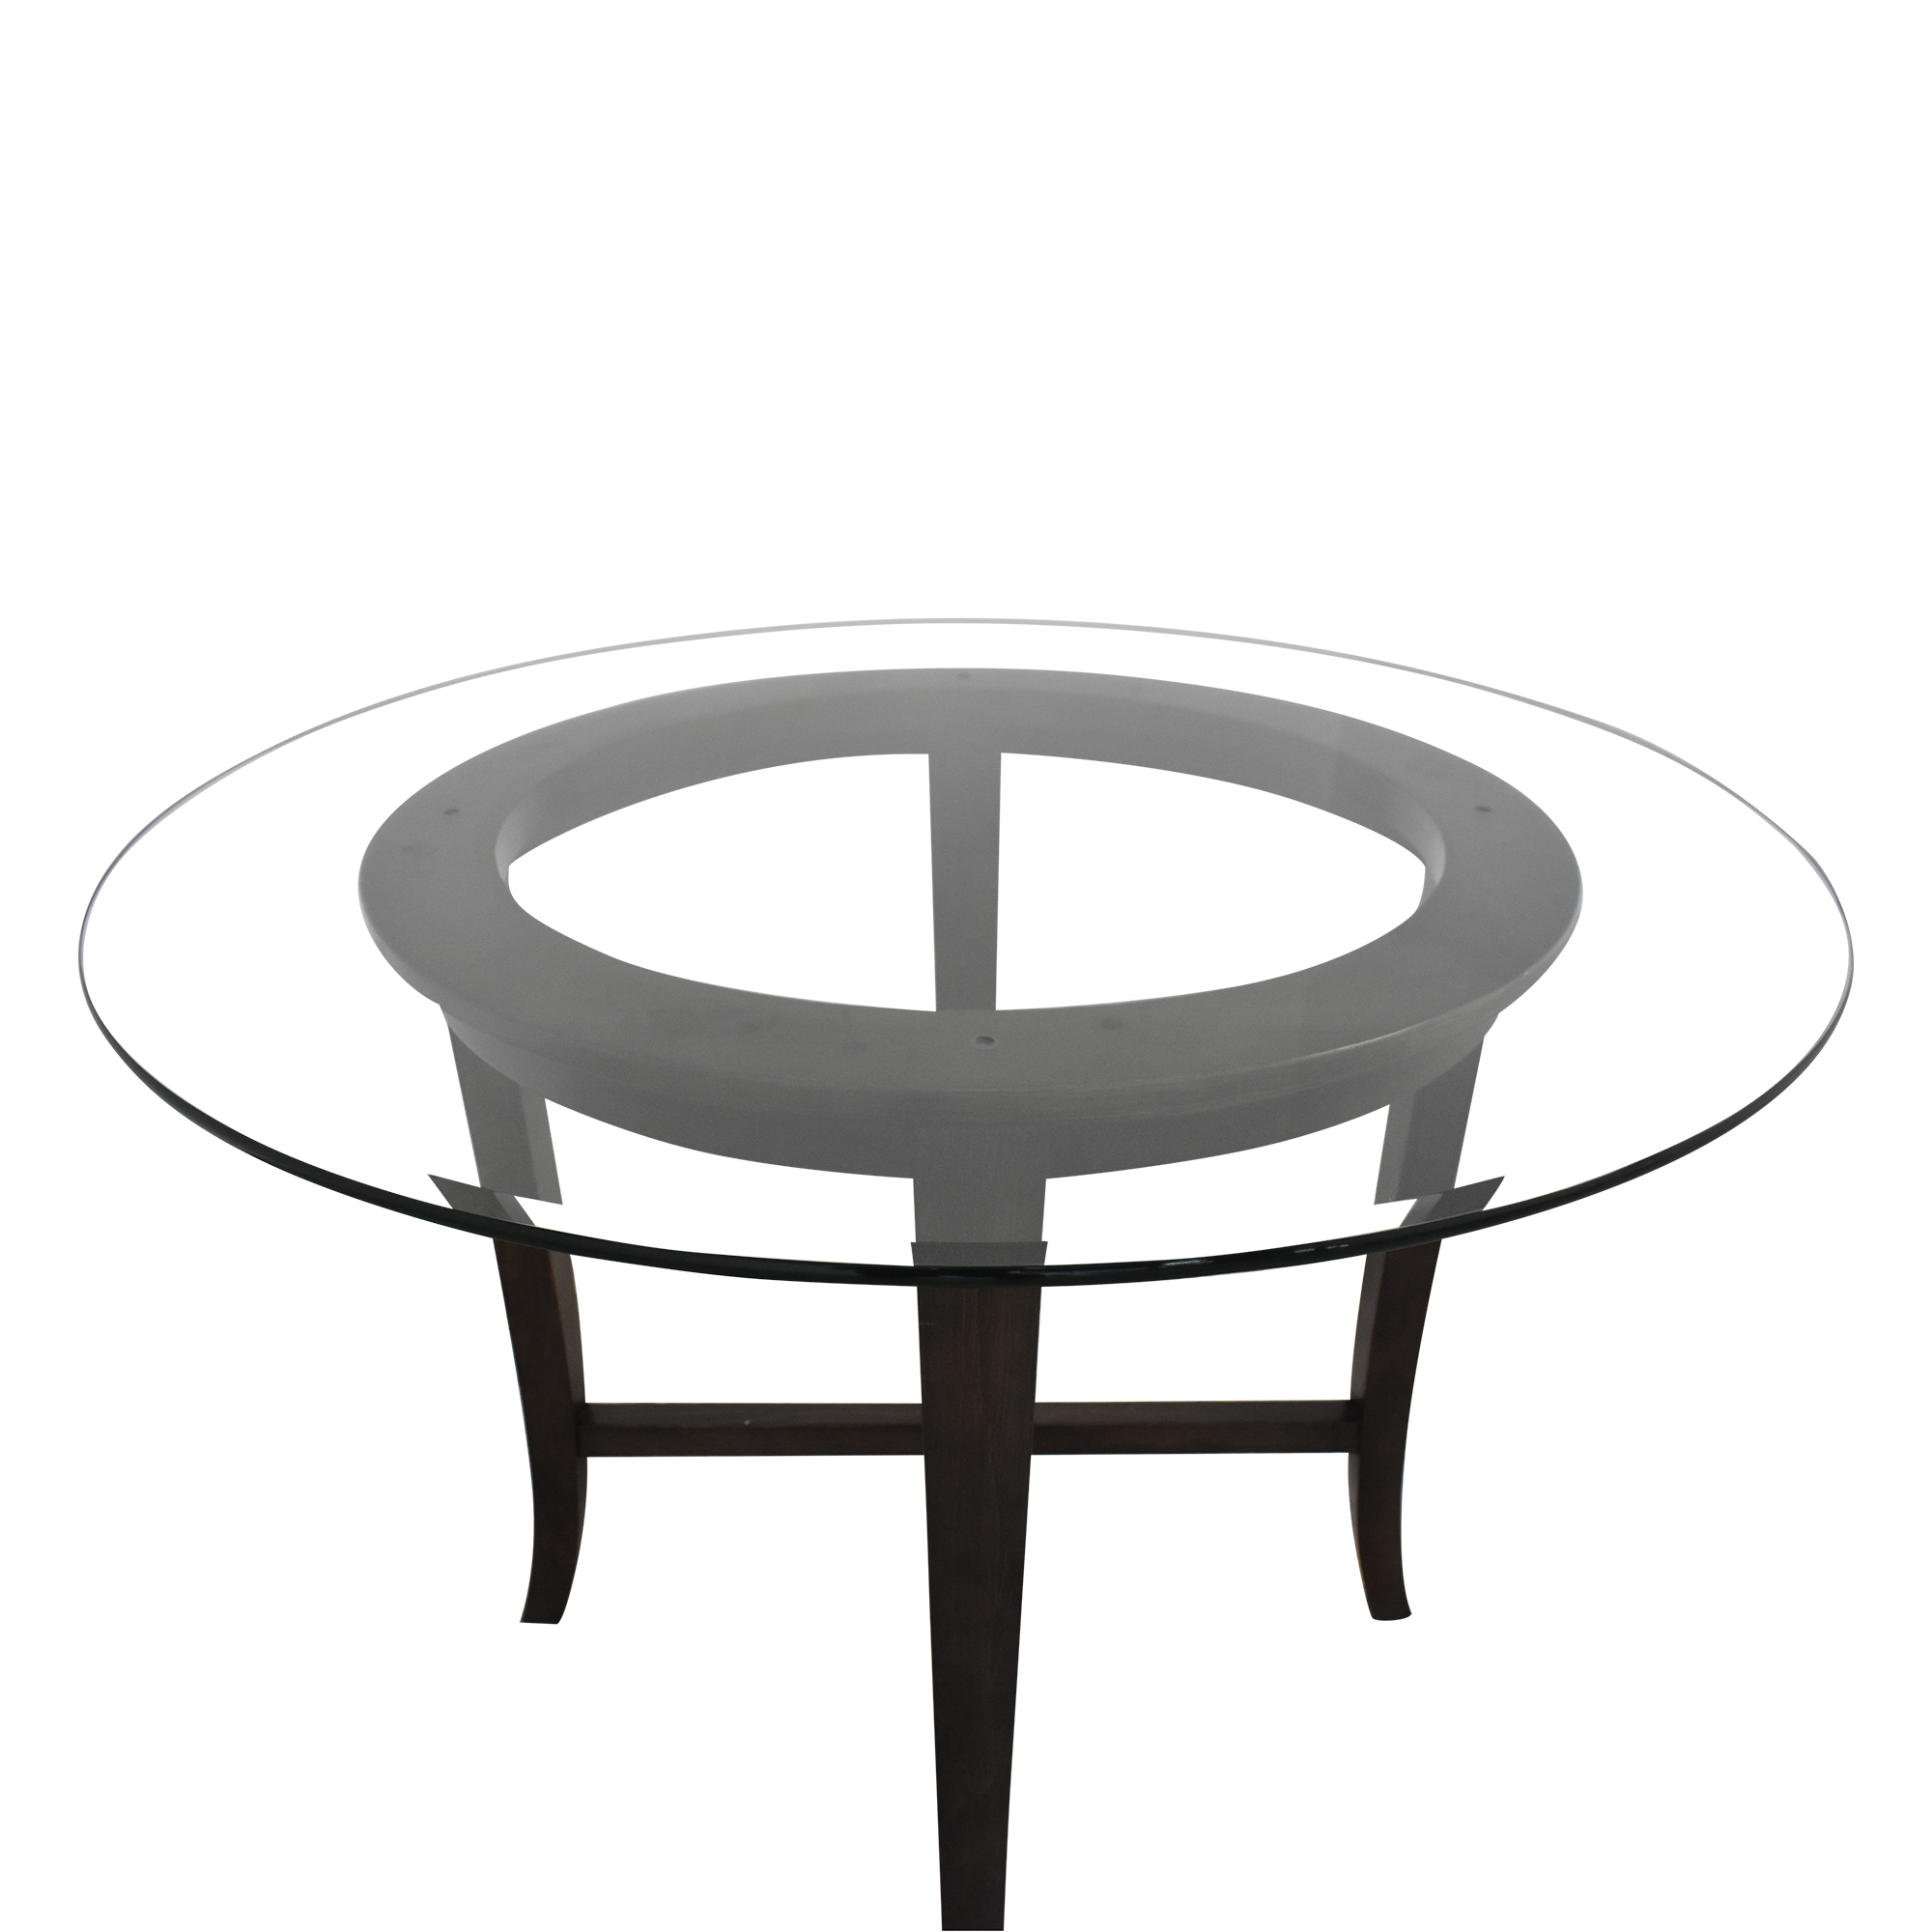 Crate & Barrel Crate & Barrel Halo Dining Table ct